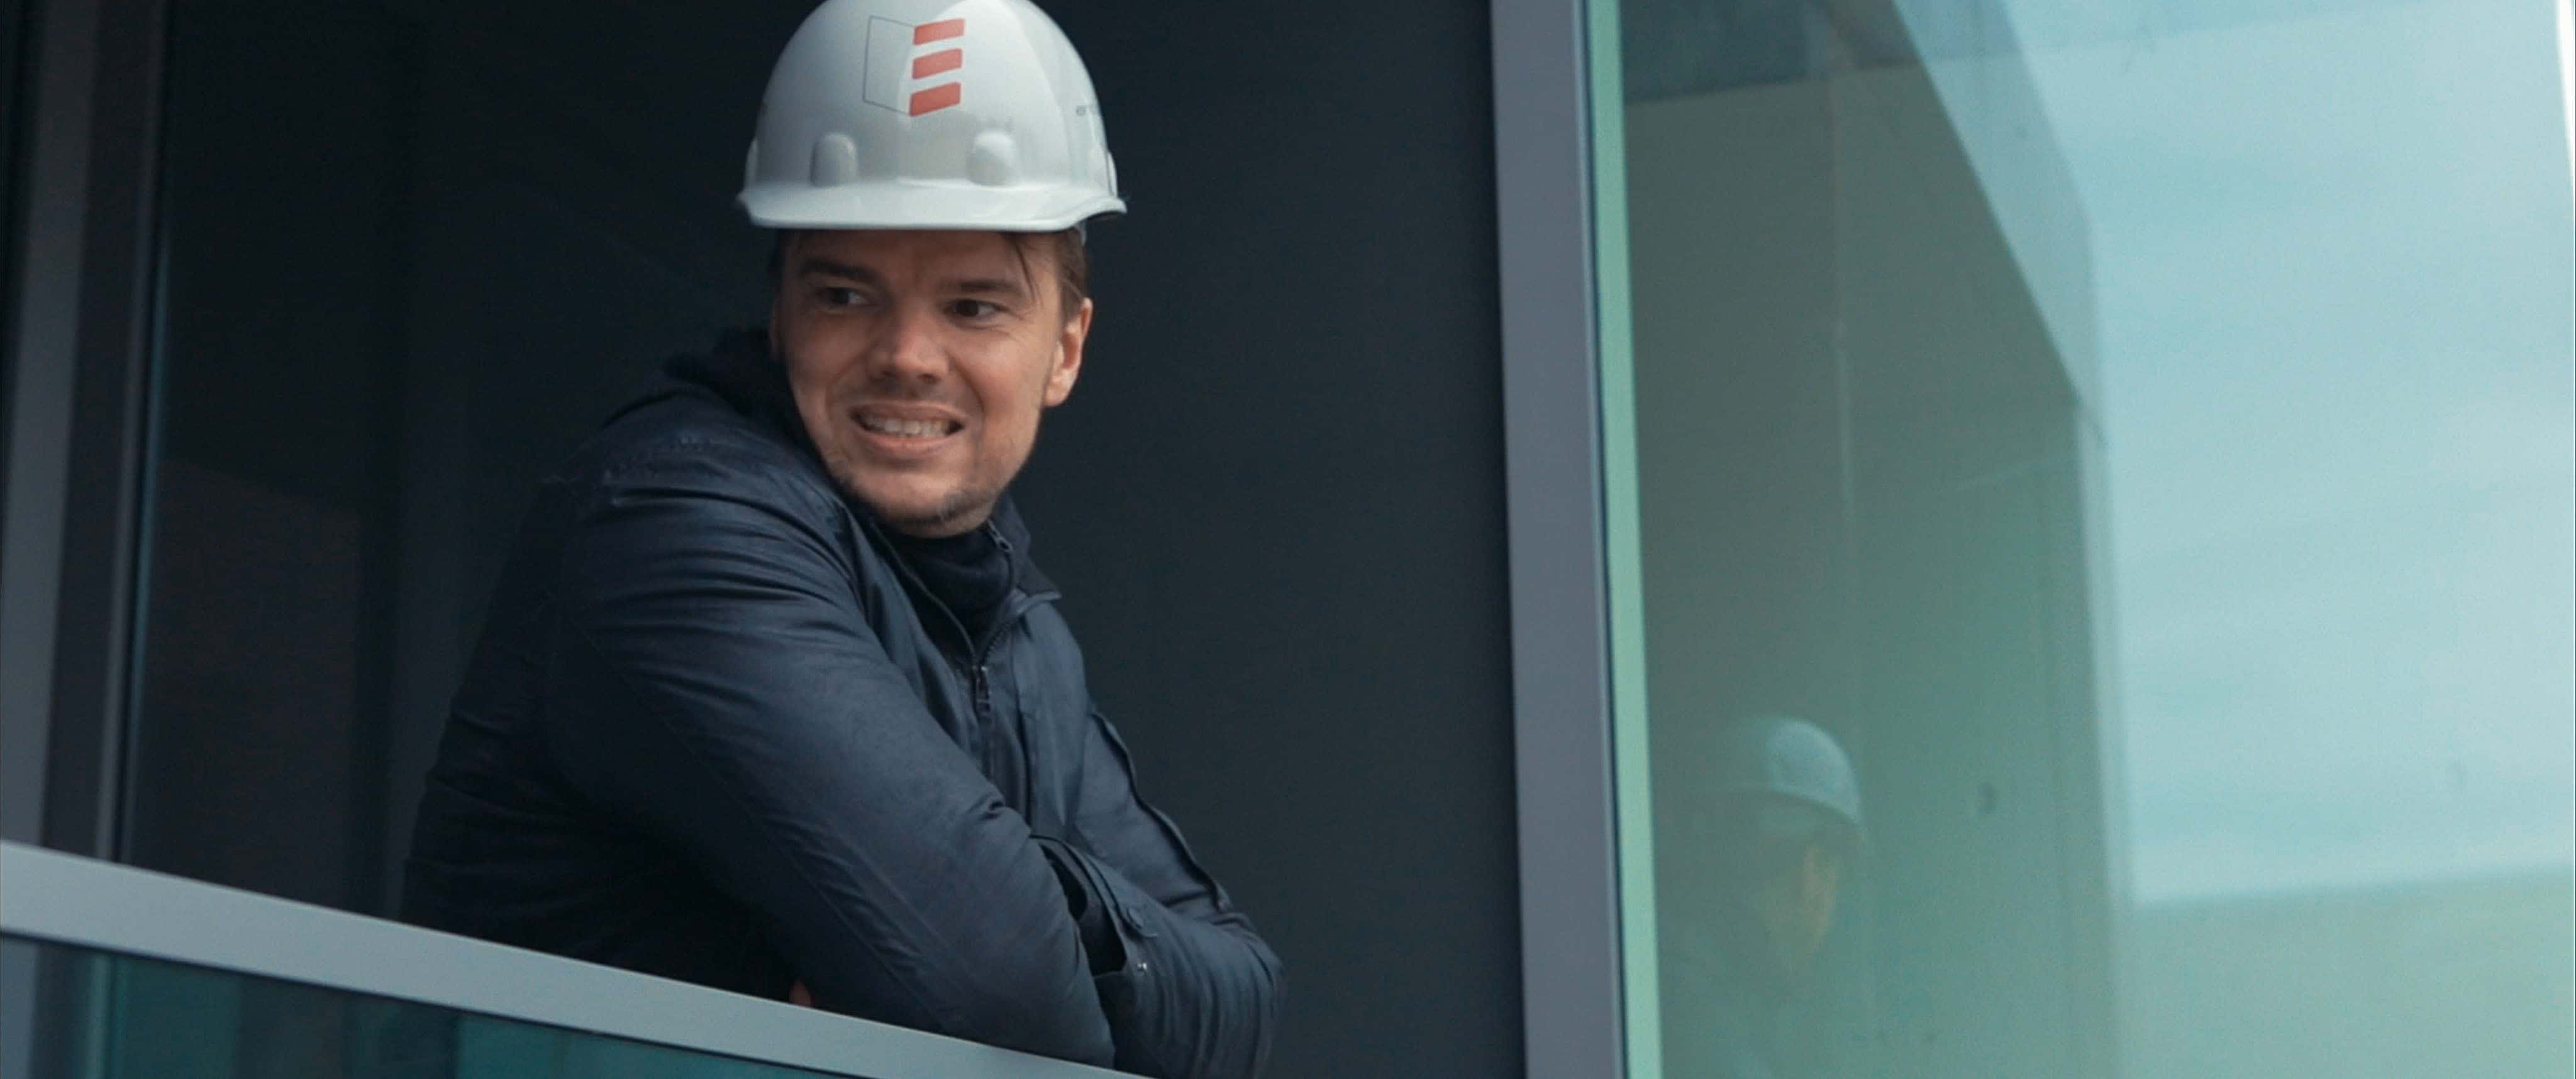 BIG Time film movie bjarke ingels architect 6